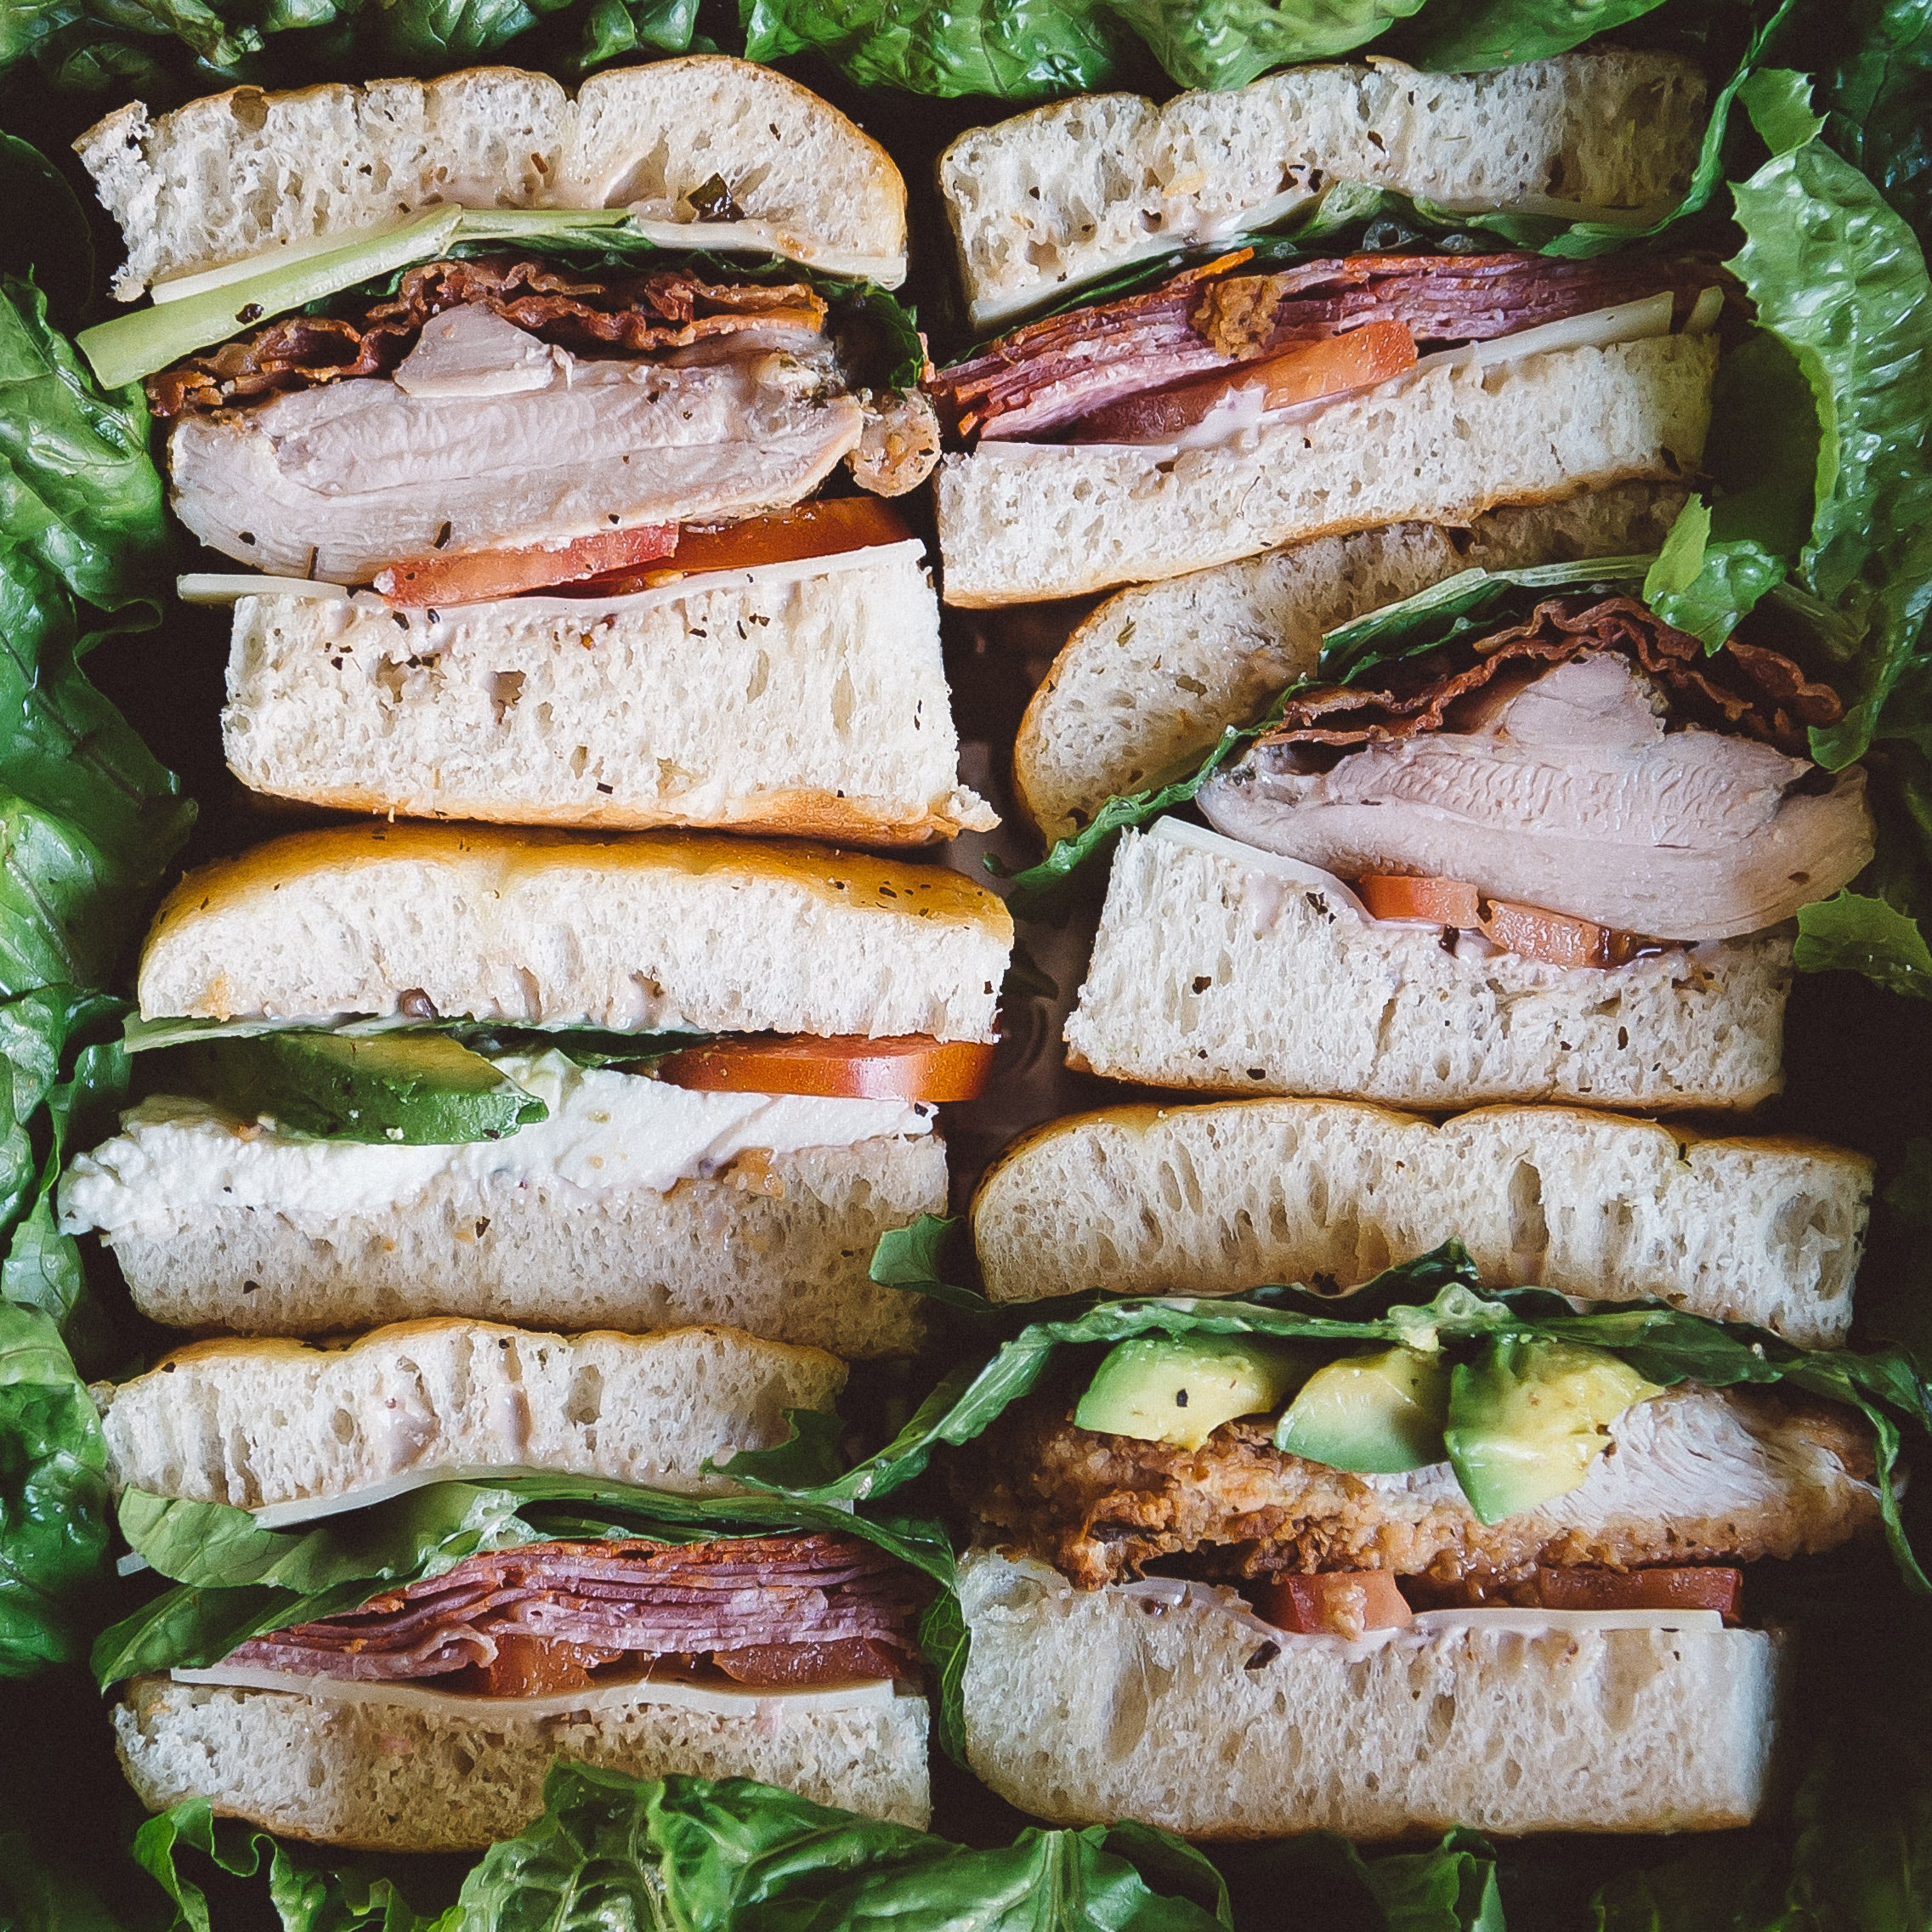 LARGE FULL FLAVORED SANDWICH TRAY